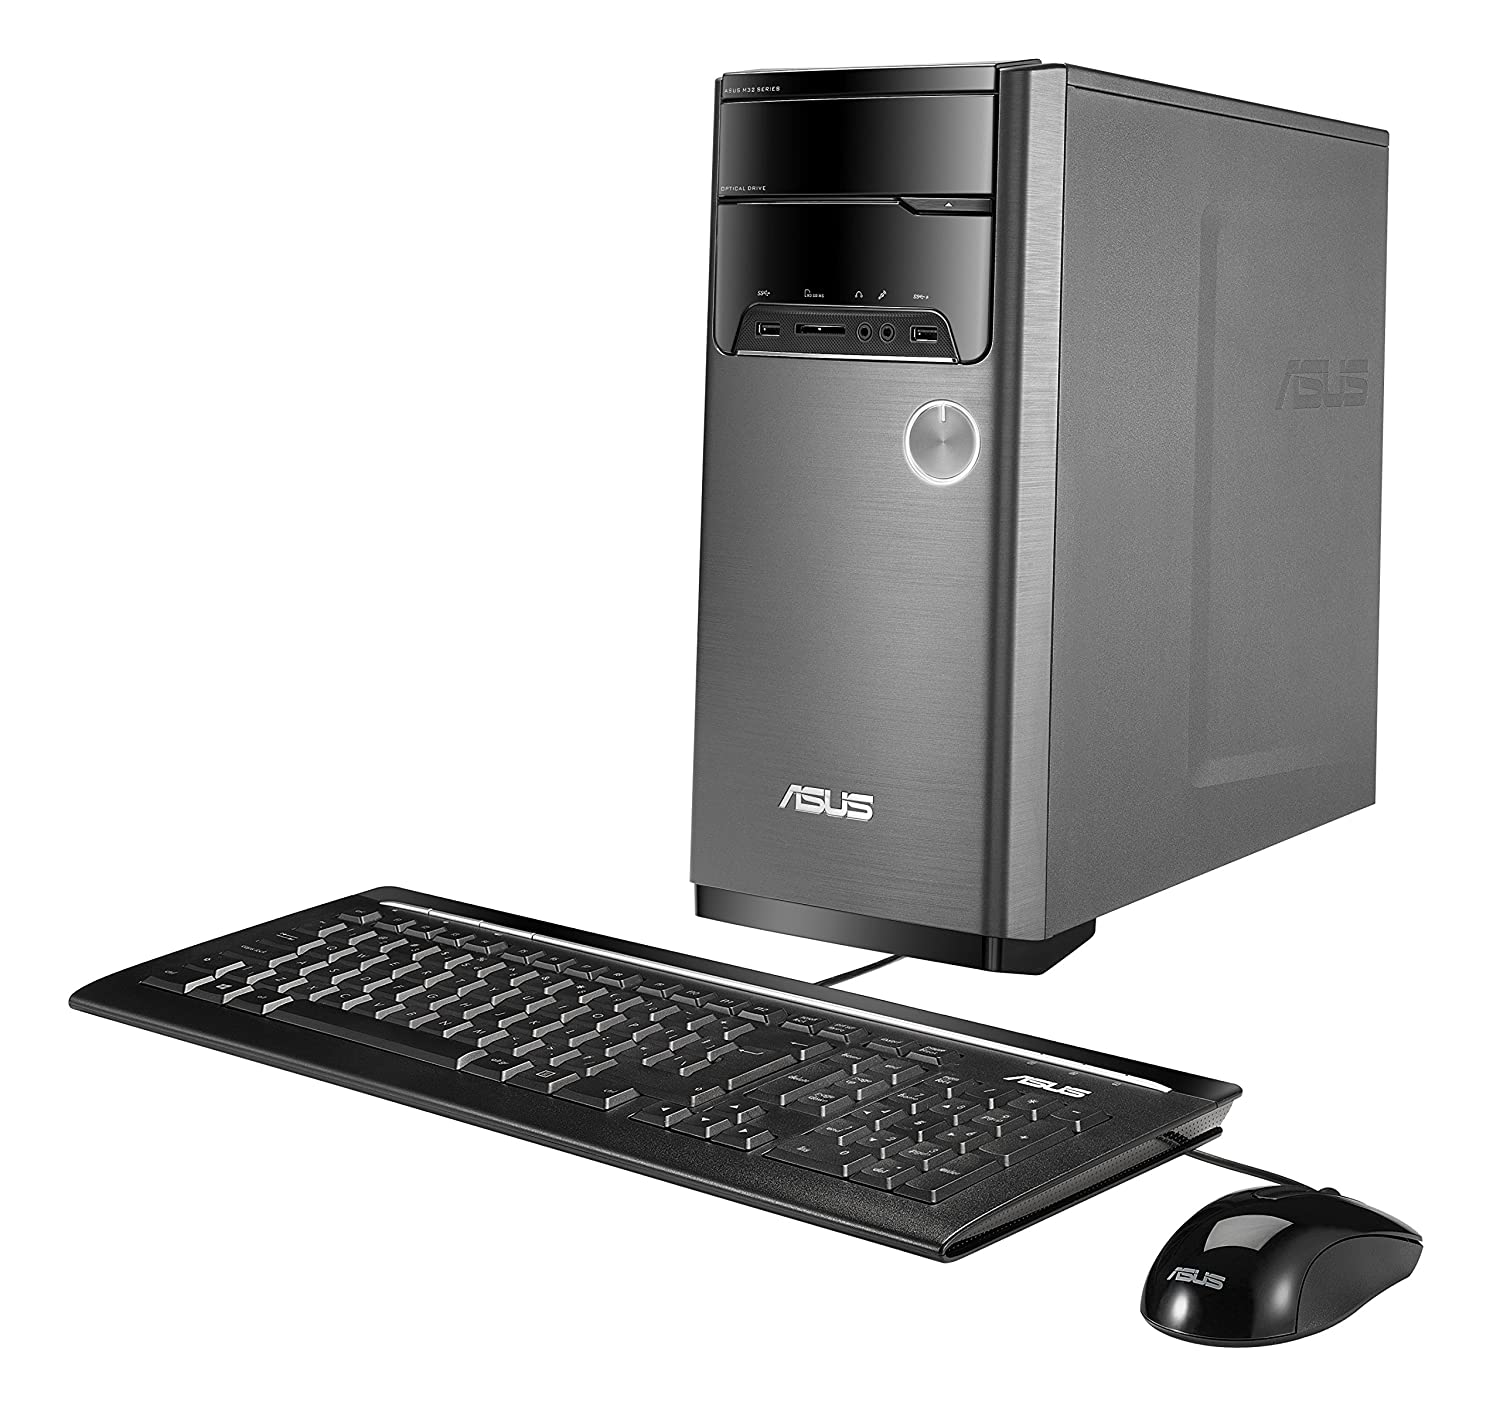 Asus M32cd Desktop Intel Core I5 6400 Quad 27ghz Mouse Dell Usb Branded Hitam 8gb Ddr4 Memory 1tb Hard Drive Windows 10 With Keyboard And Computers